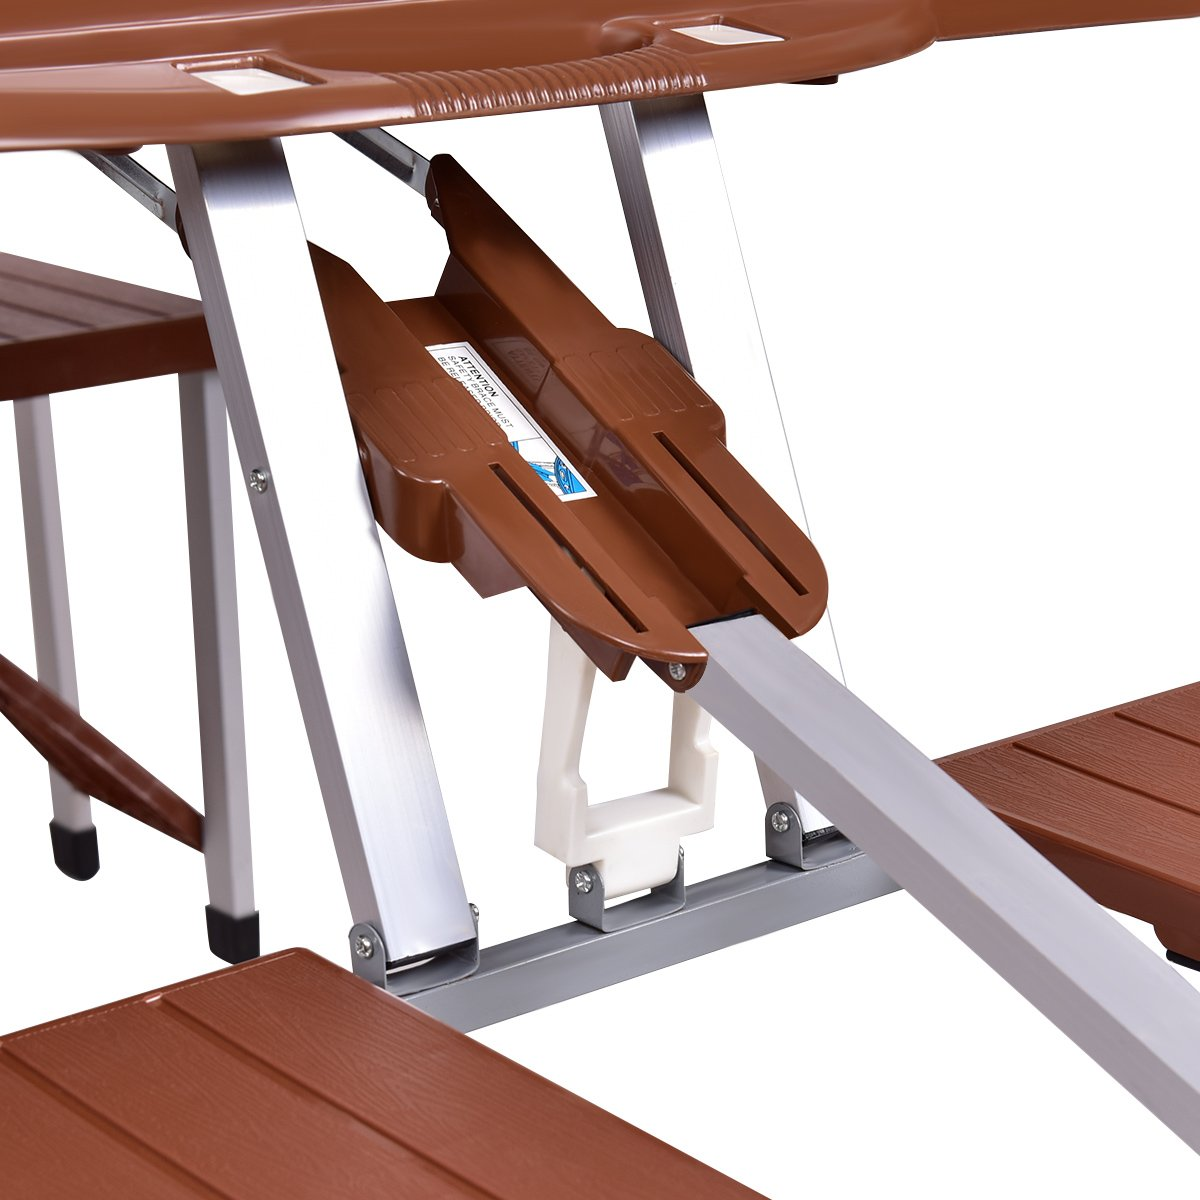 Giantex Portable Folding Picnic Table with Seating for 4 Garden Party Camping Time Design (Brown) by Giantex (Image #7)